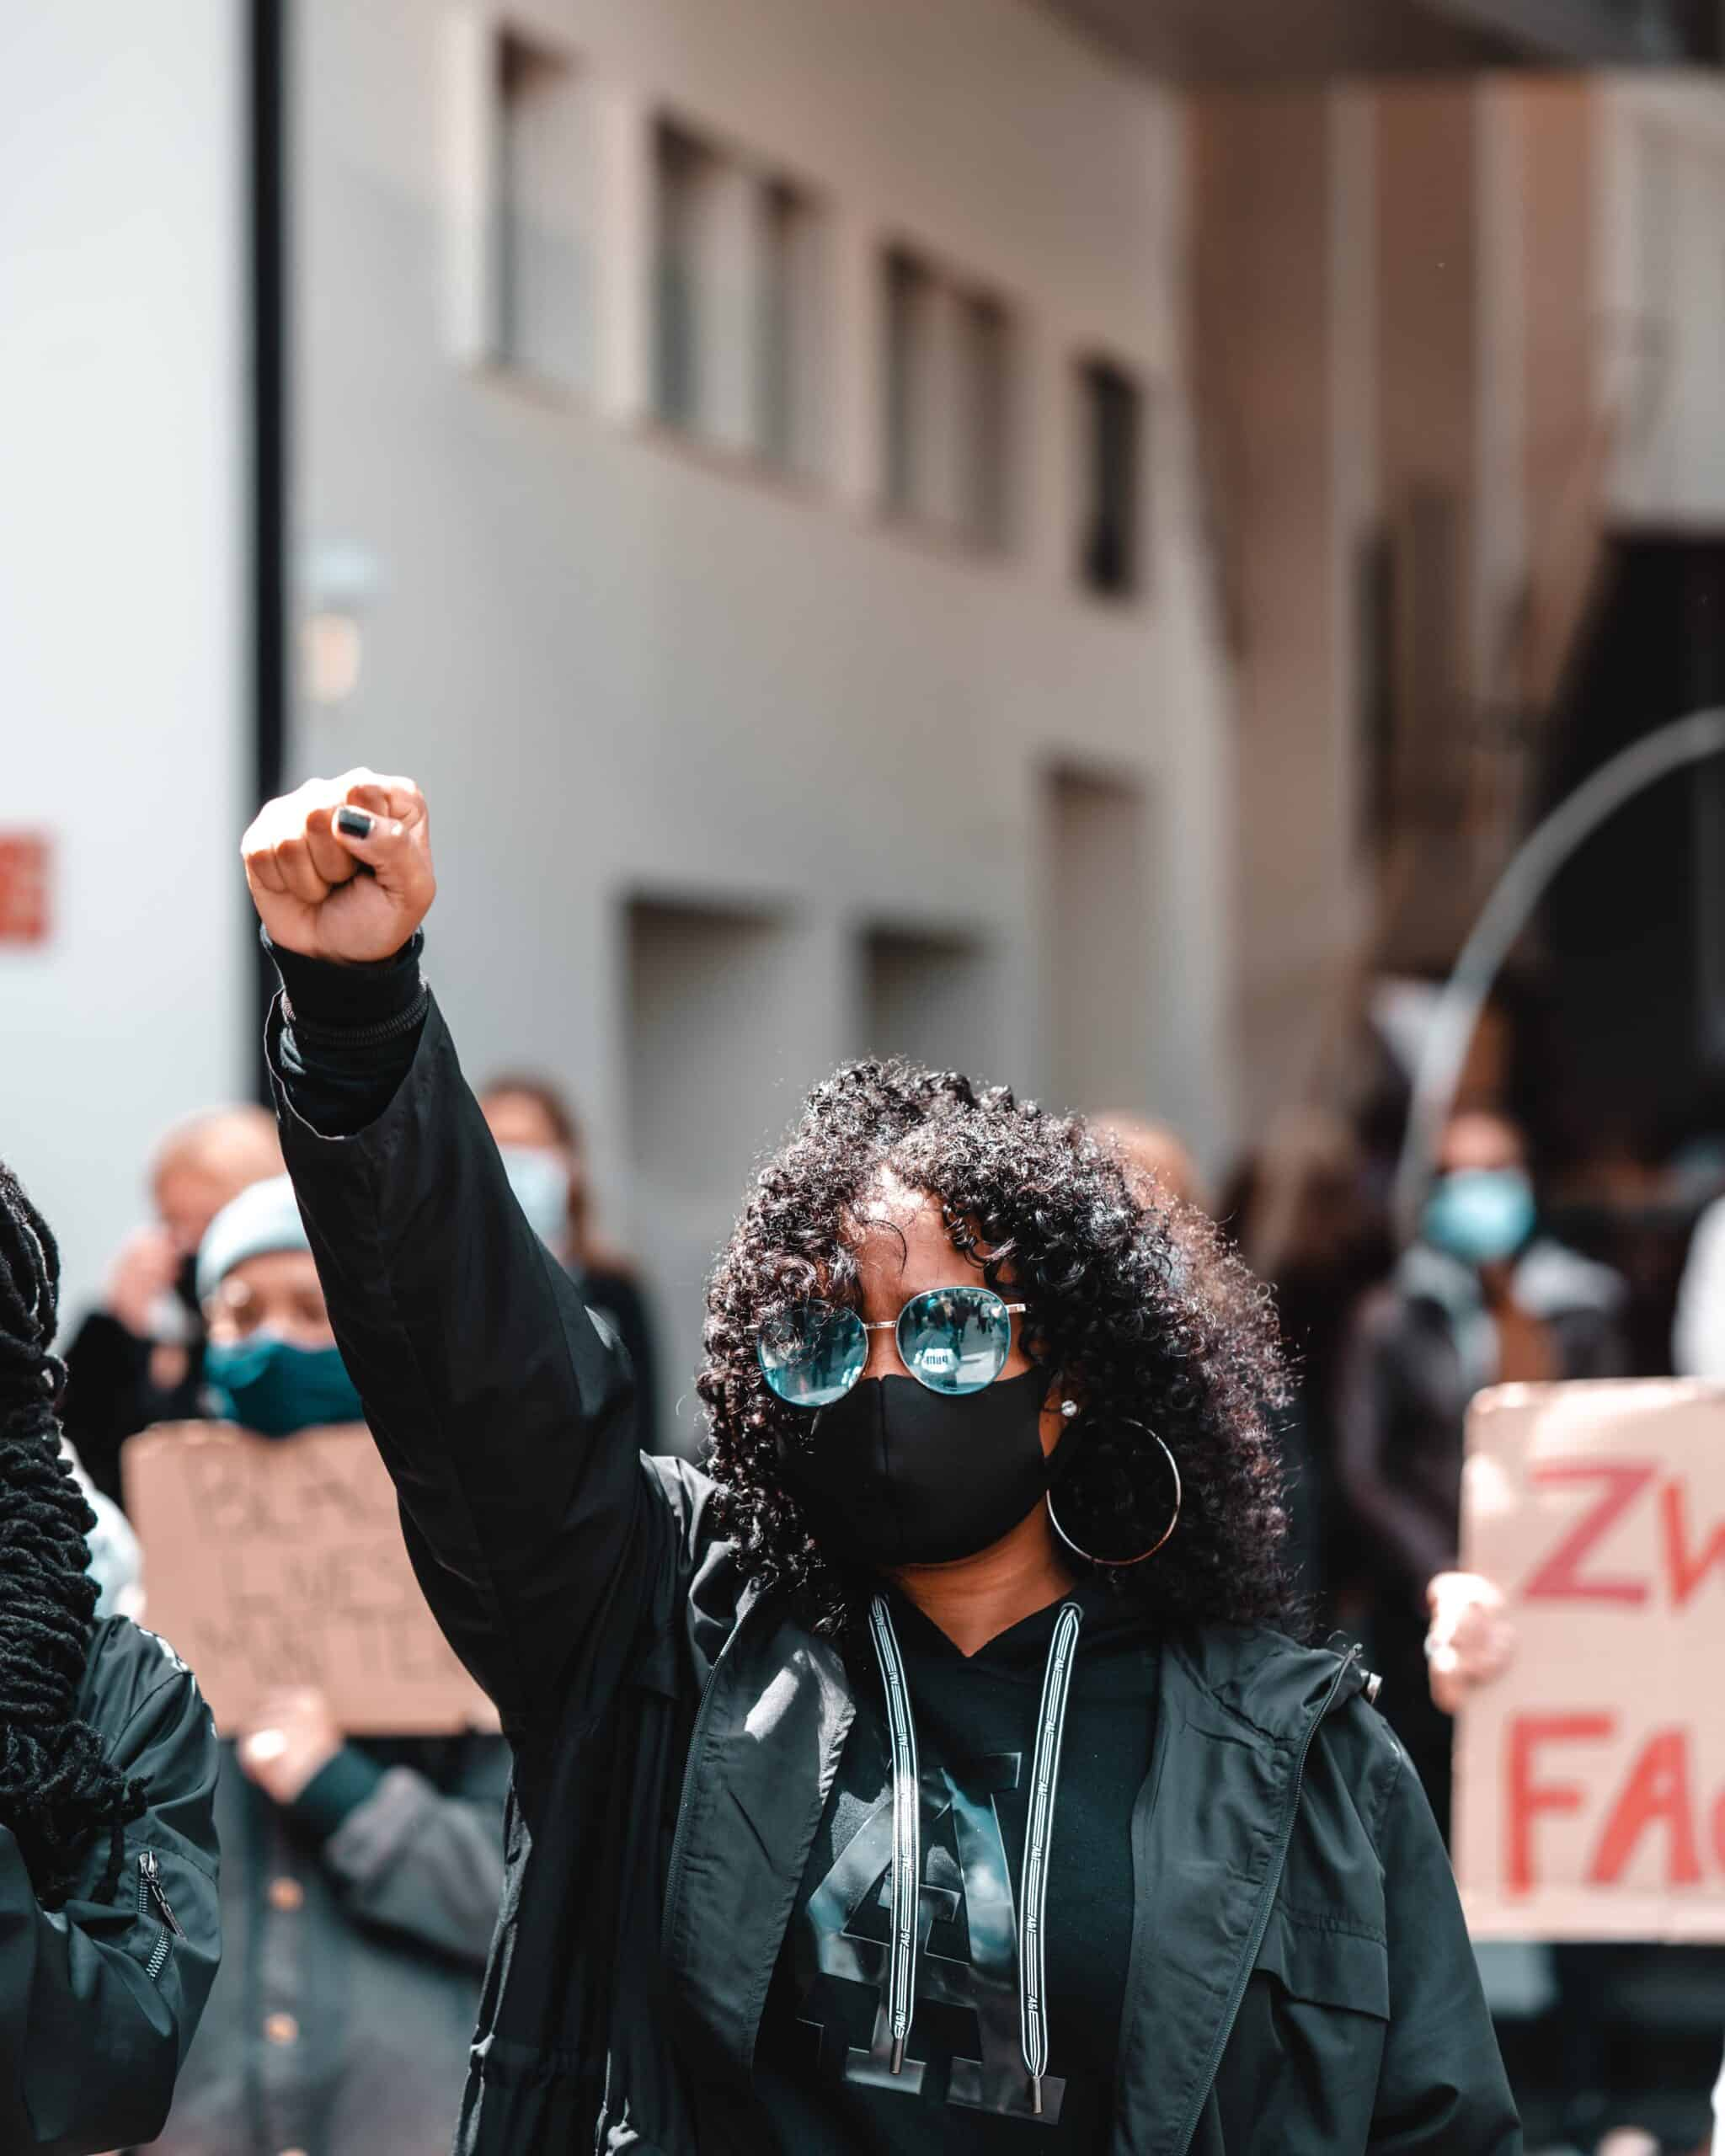 Image of brown skinned woman with blue shades and shoulder length curly dark hair with fist raised amidst crowd of protesters